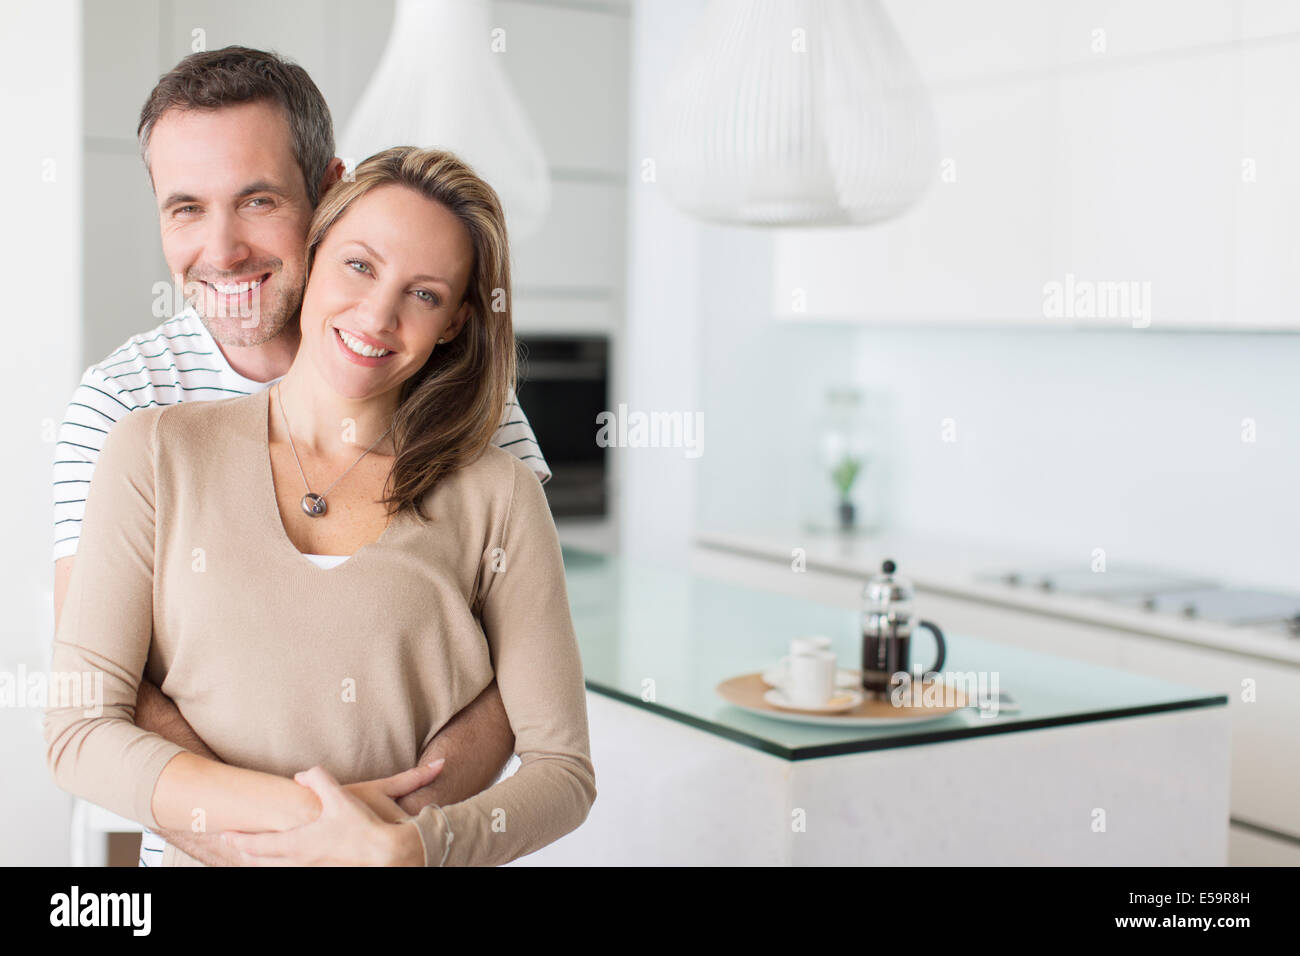 Couple hugging in modern kitchen Photo Stock